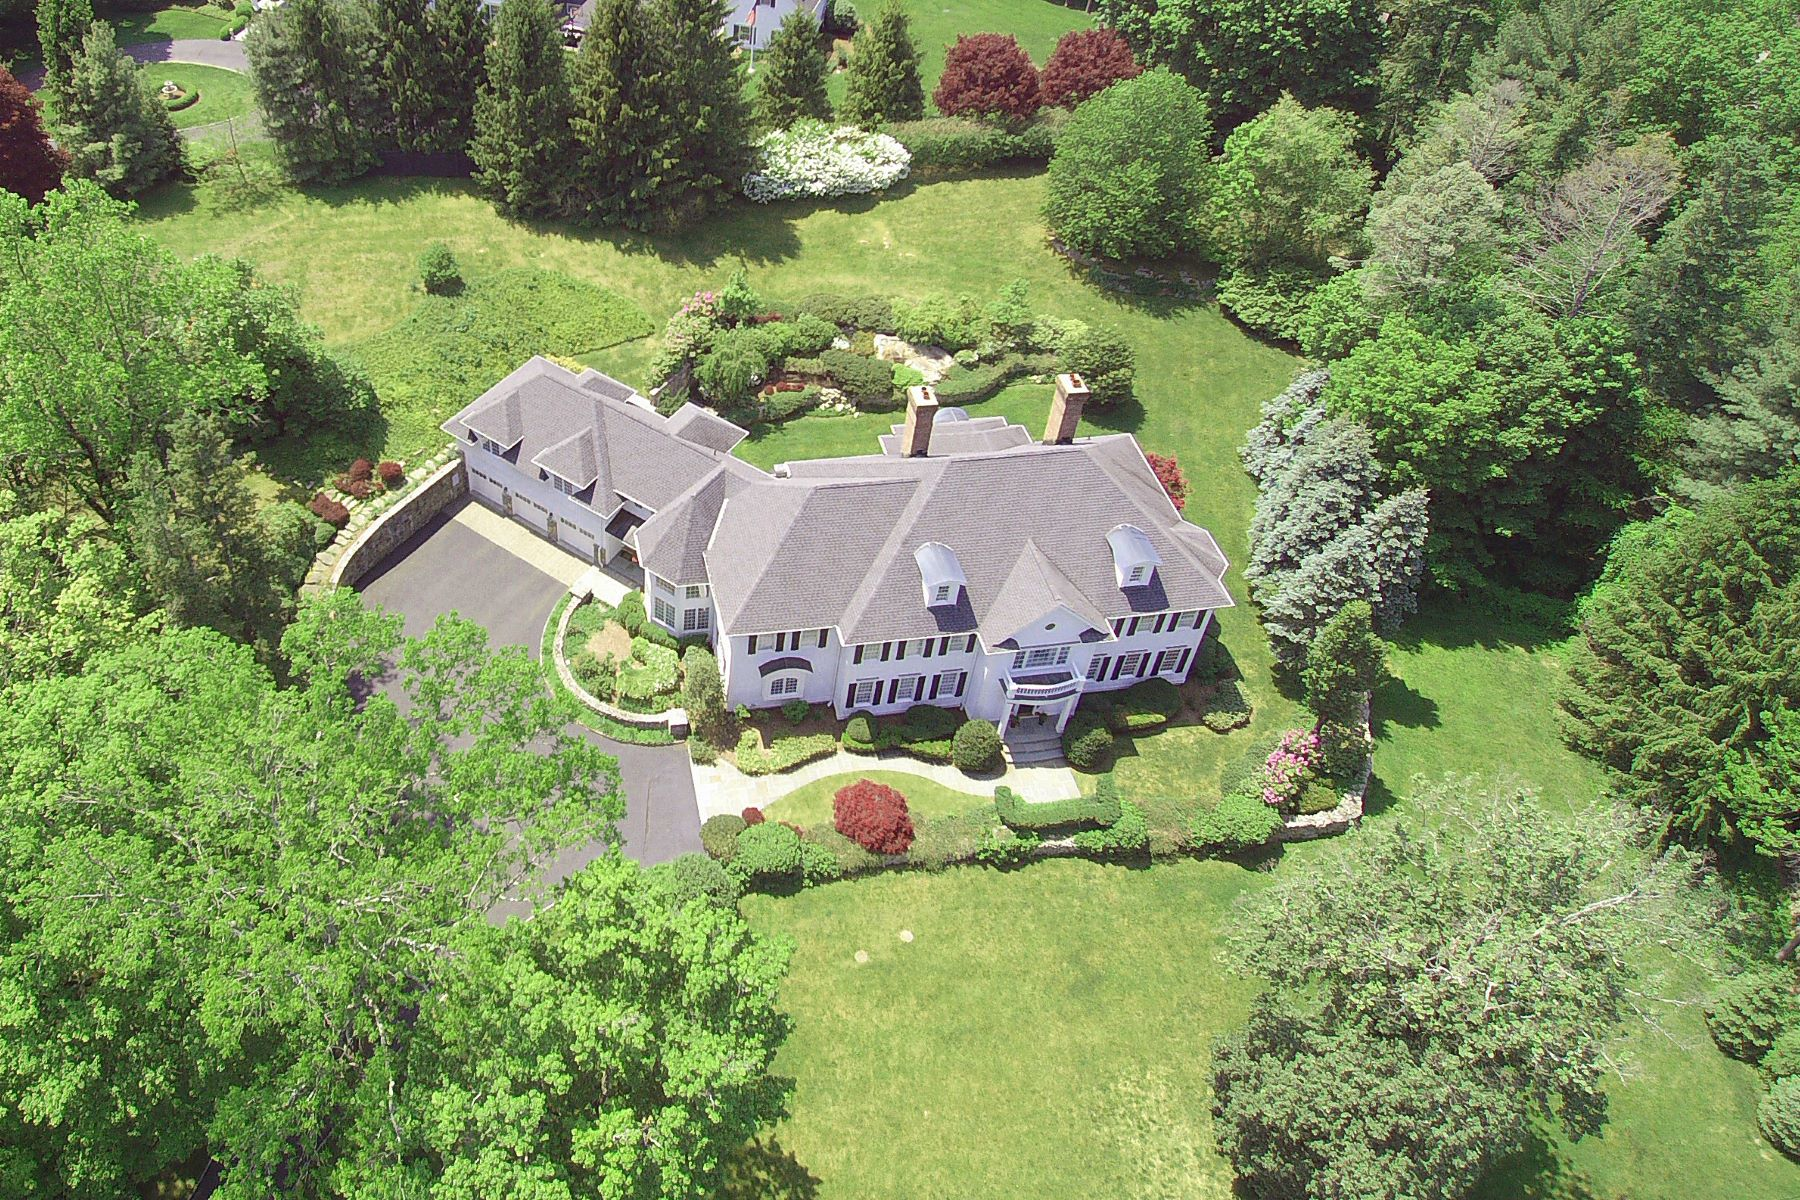 Single Family Home for Sale at Exquisite Custom Home 6 Country Club Road Ridgefield, Connecticut 06877 United States